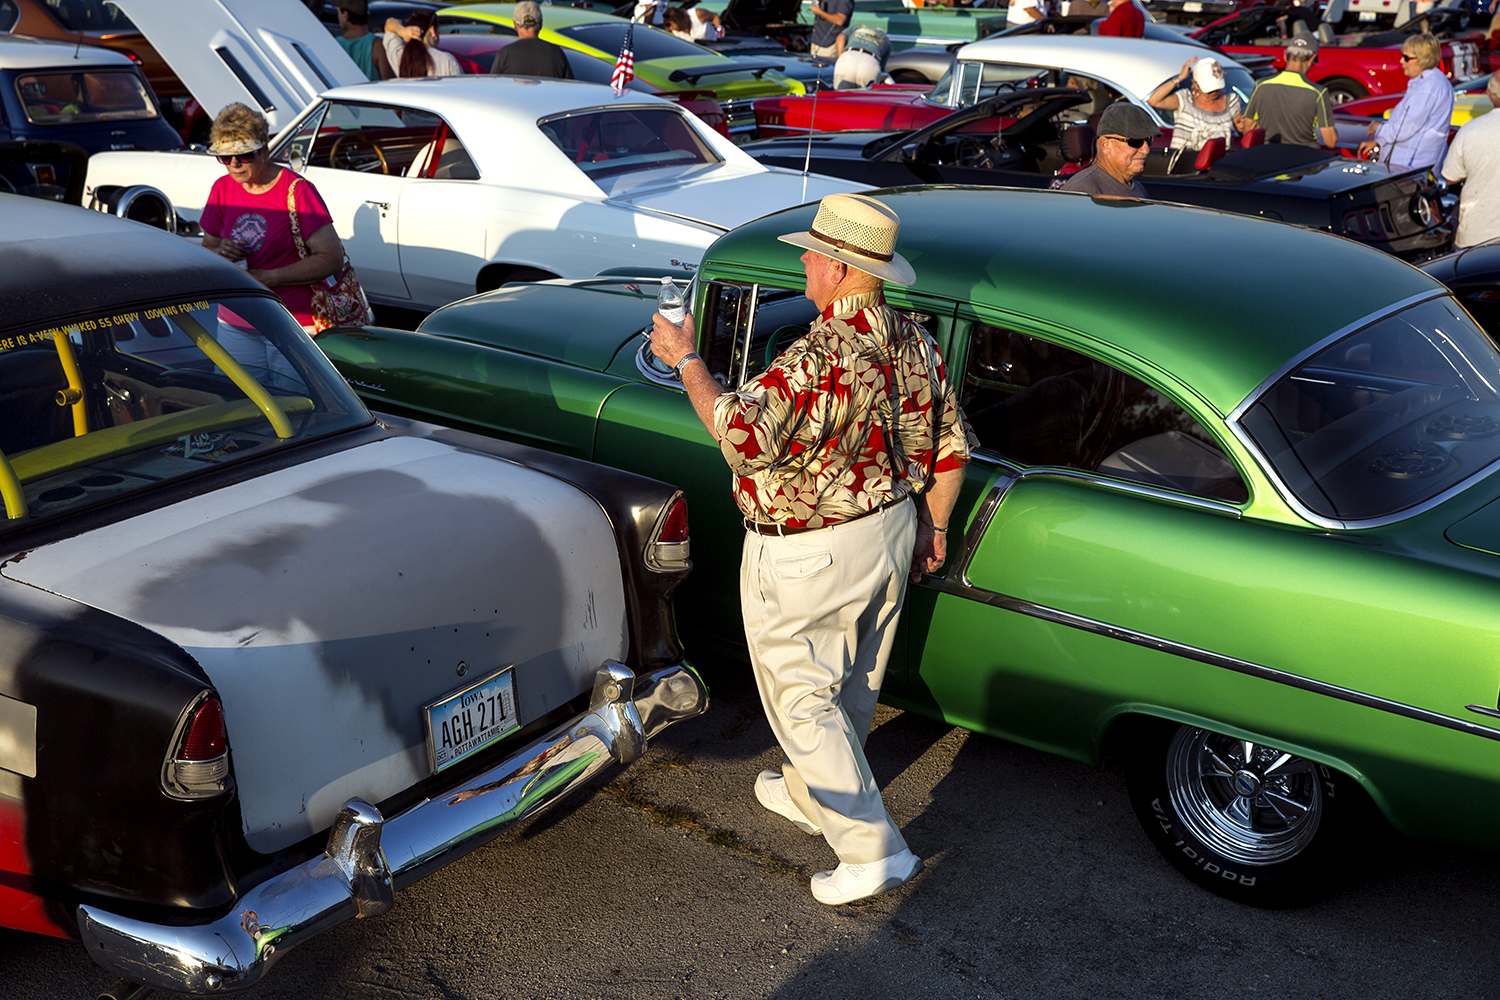 Steve Leach wanders through the cars lined up for the Route 66 City Nights Cruise in the Capital City Shopping Center parking lot Sept. 22. The cruise kicked off the 16th annual Route 66 Mother Road Festival downtown. Rich Saal/The State Journal-Register